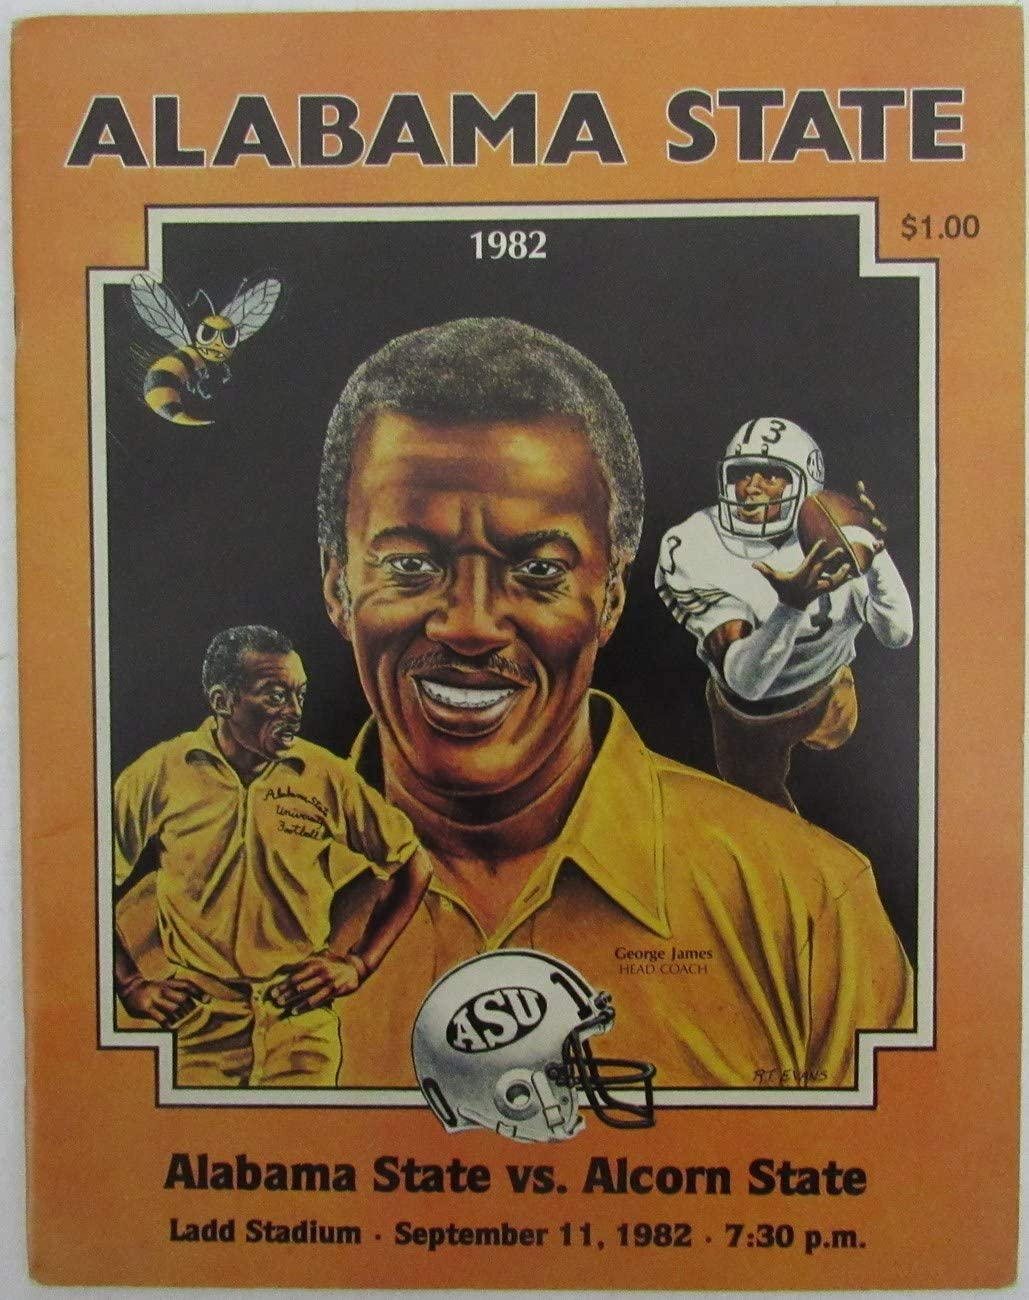 1982 Alabama Max 70% OFF State vs. Alcorn Limited Special Price Progra College Game Football